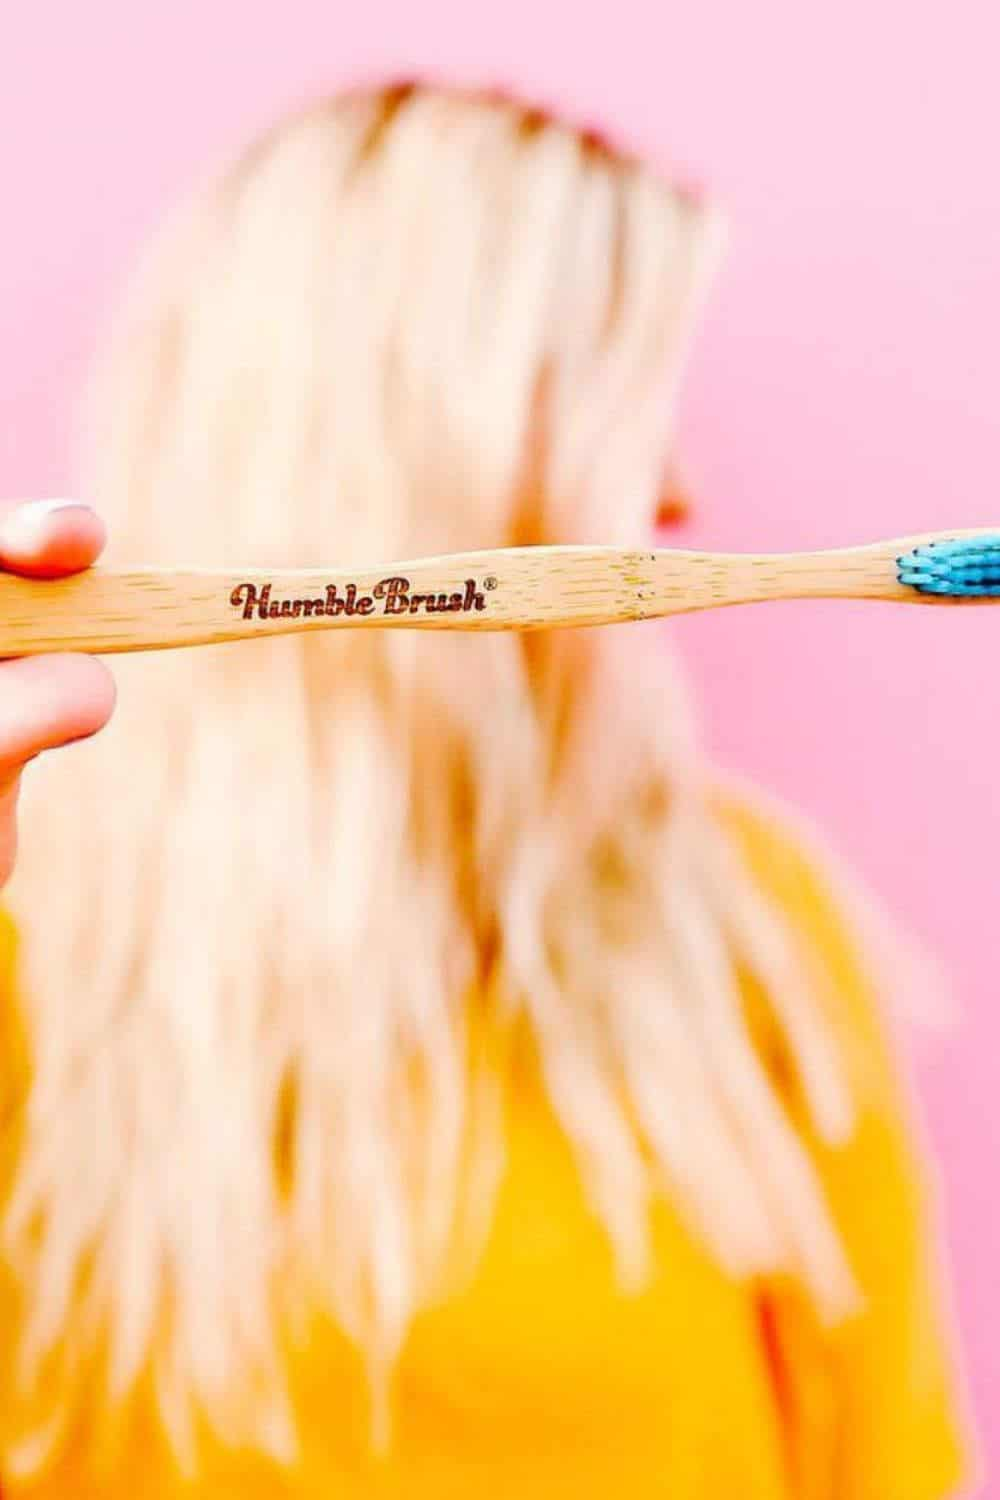 We're taking a bite out of plastic dental care and diving into zero waste toothbrushes, or rather lower waste toothbrushes, as you'll see shortly. Image by Humble Brush #zerowastetoothbrush #zerowastetoothbrushes #sustainablejungle